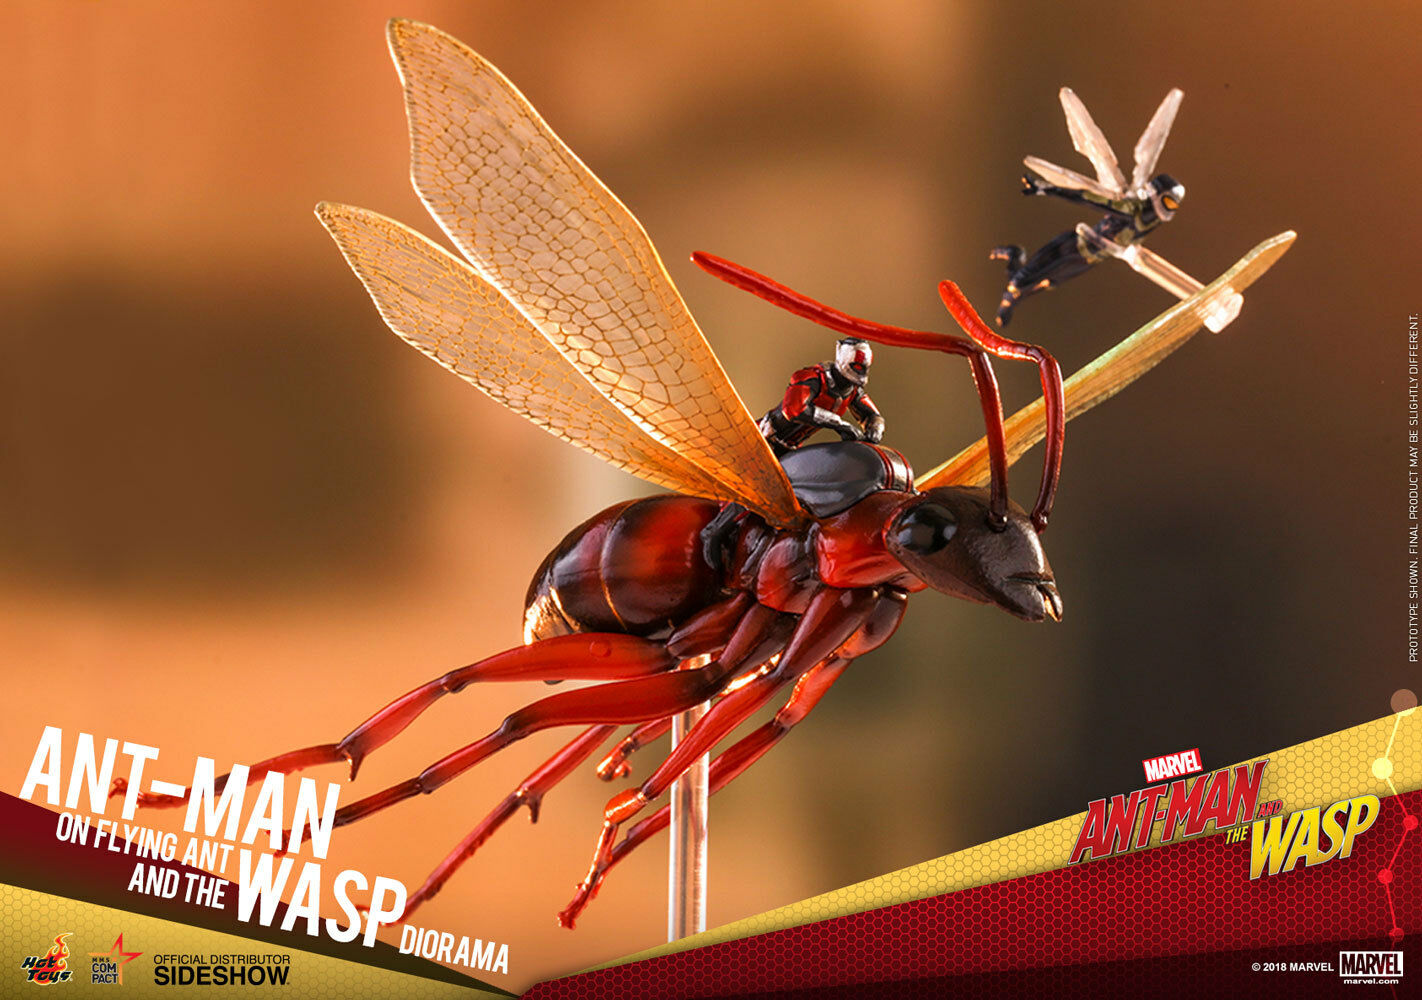 Hot Toys ANT-MAN on Flying Ant and THE WASP Collectible Figure Diorama MMSC004